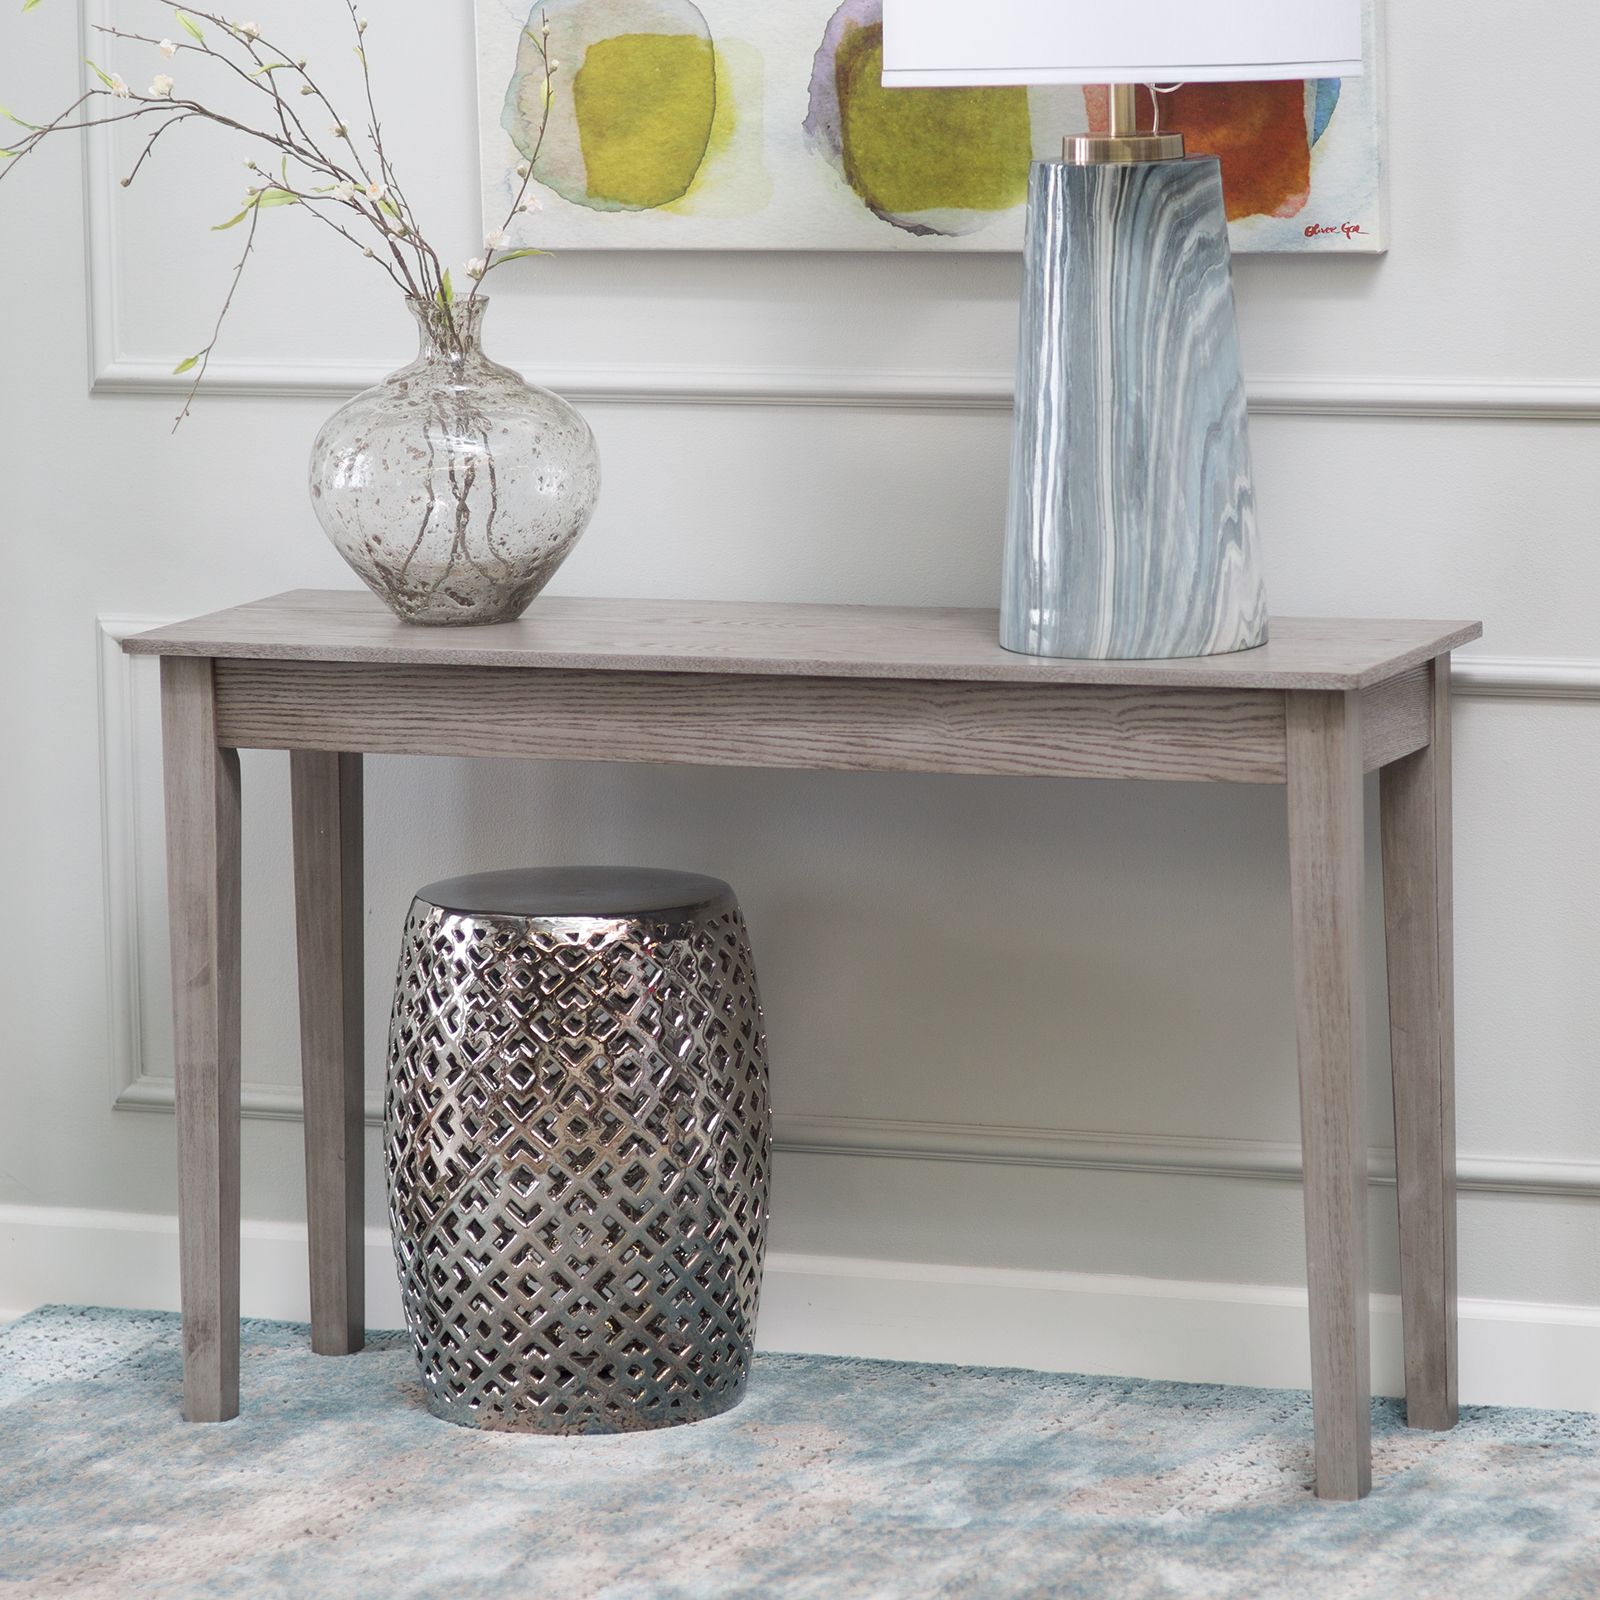 Delightful Finley Home Turner Console Table